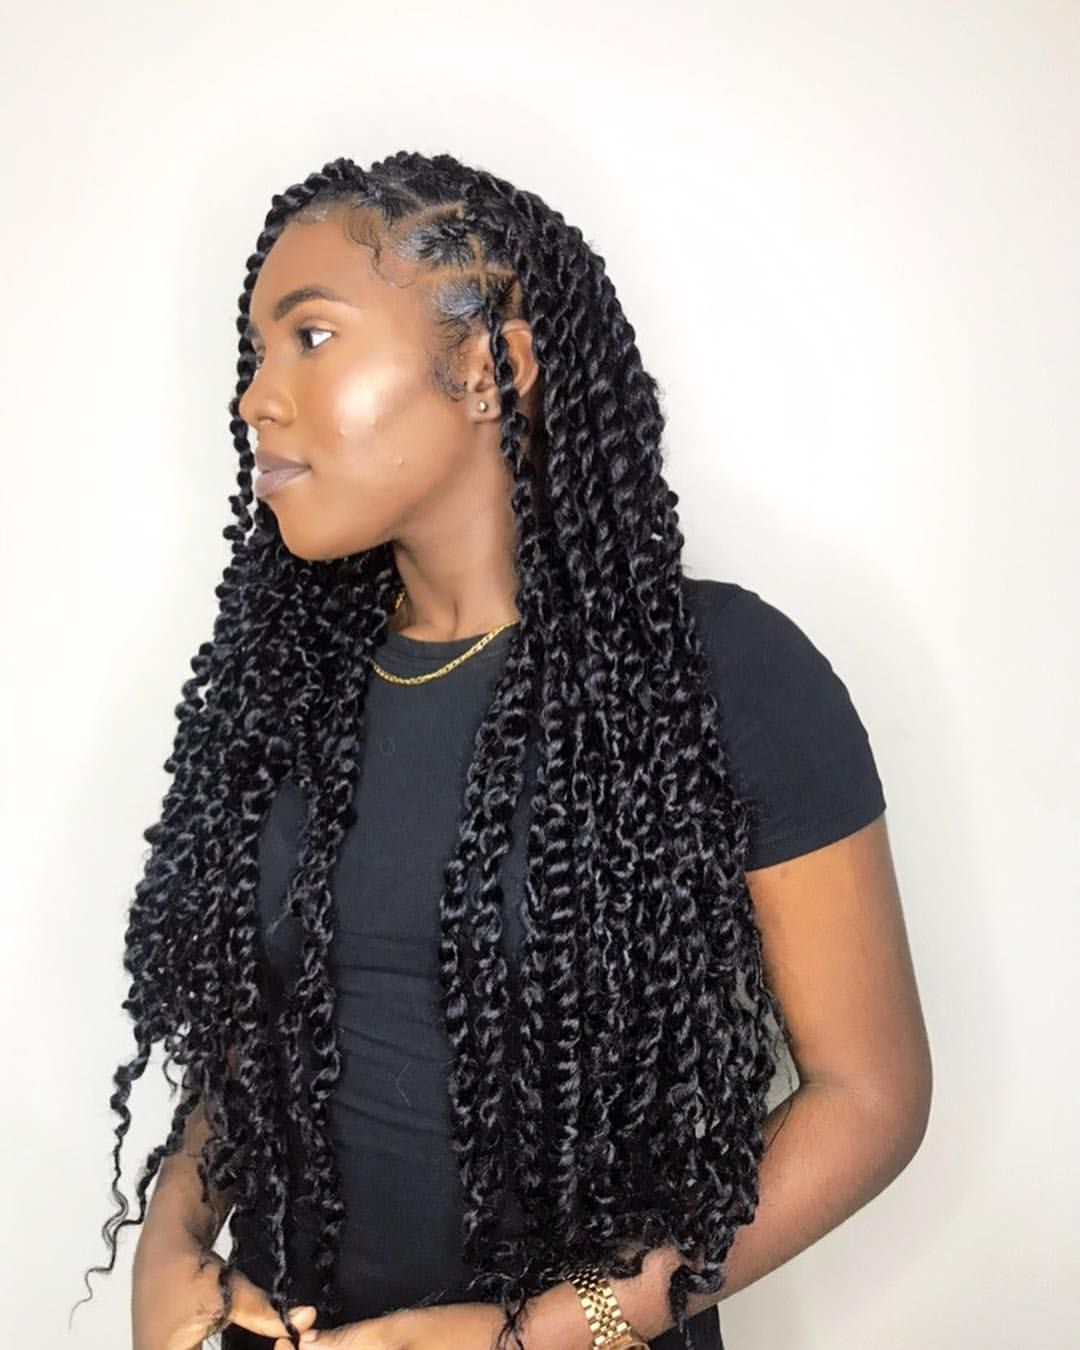 Her first protective style and she loves it ???? | inspired by Hun @xolovekailyn | #passiontwists #synthetic #donebygenie #natural… #protectivestyles